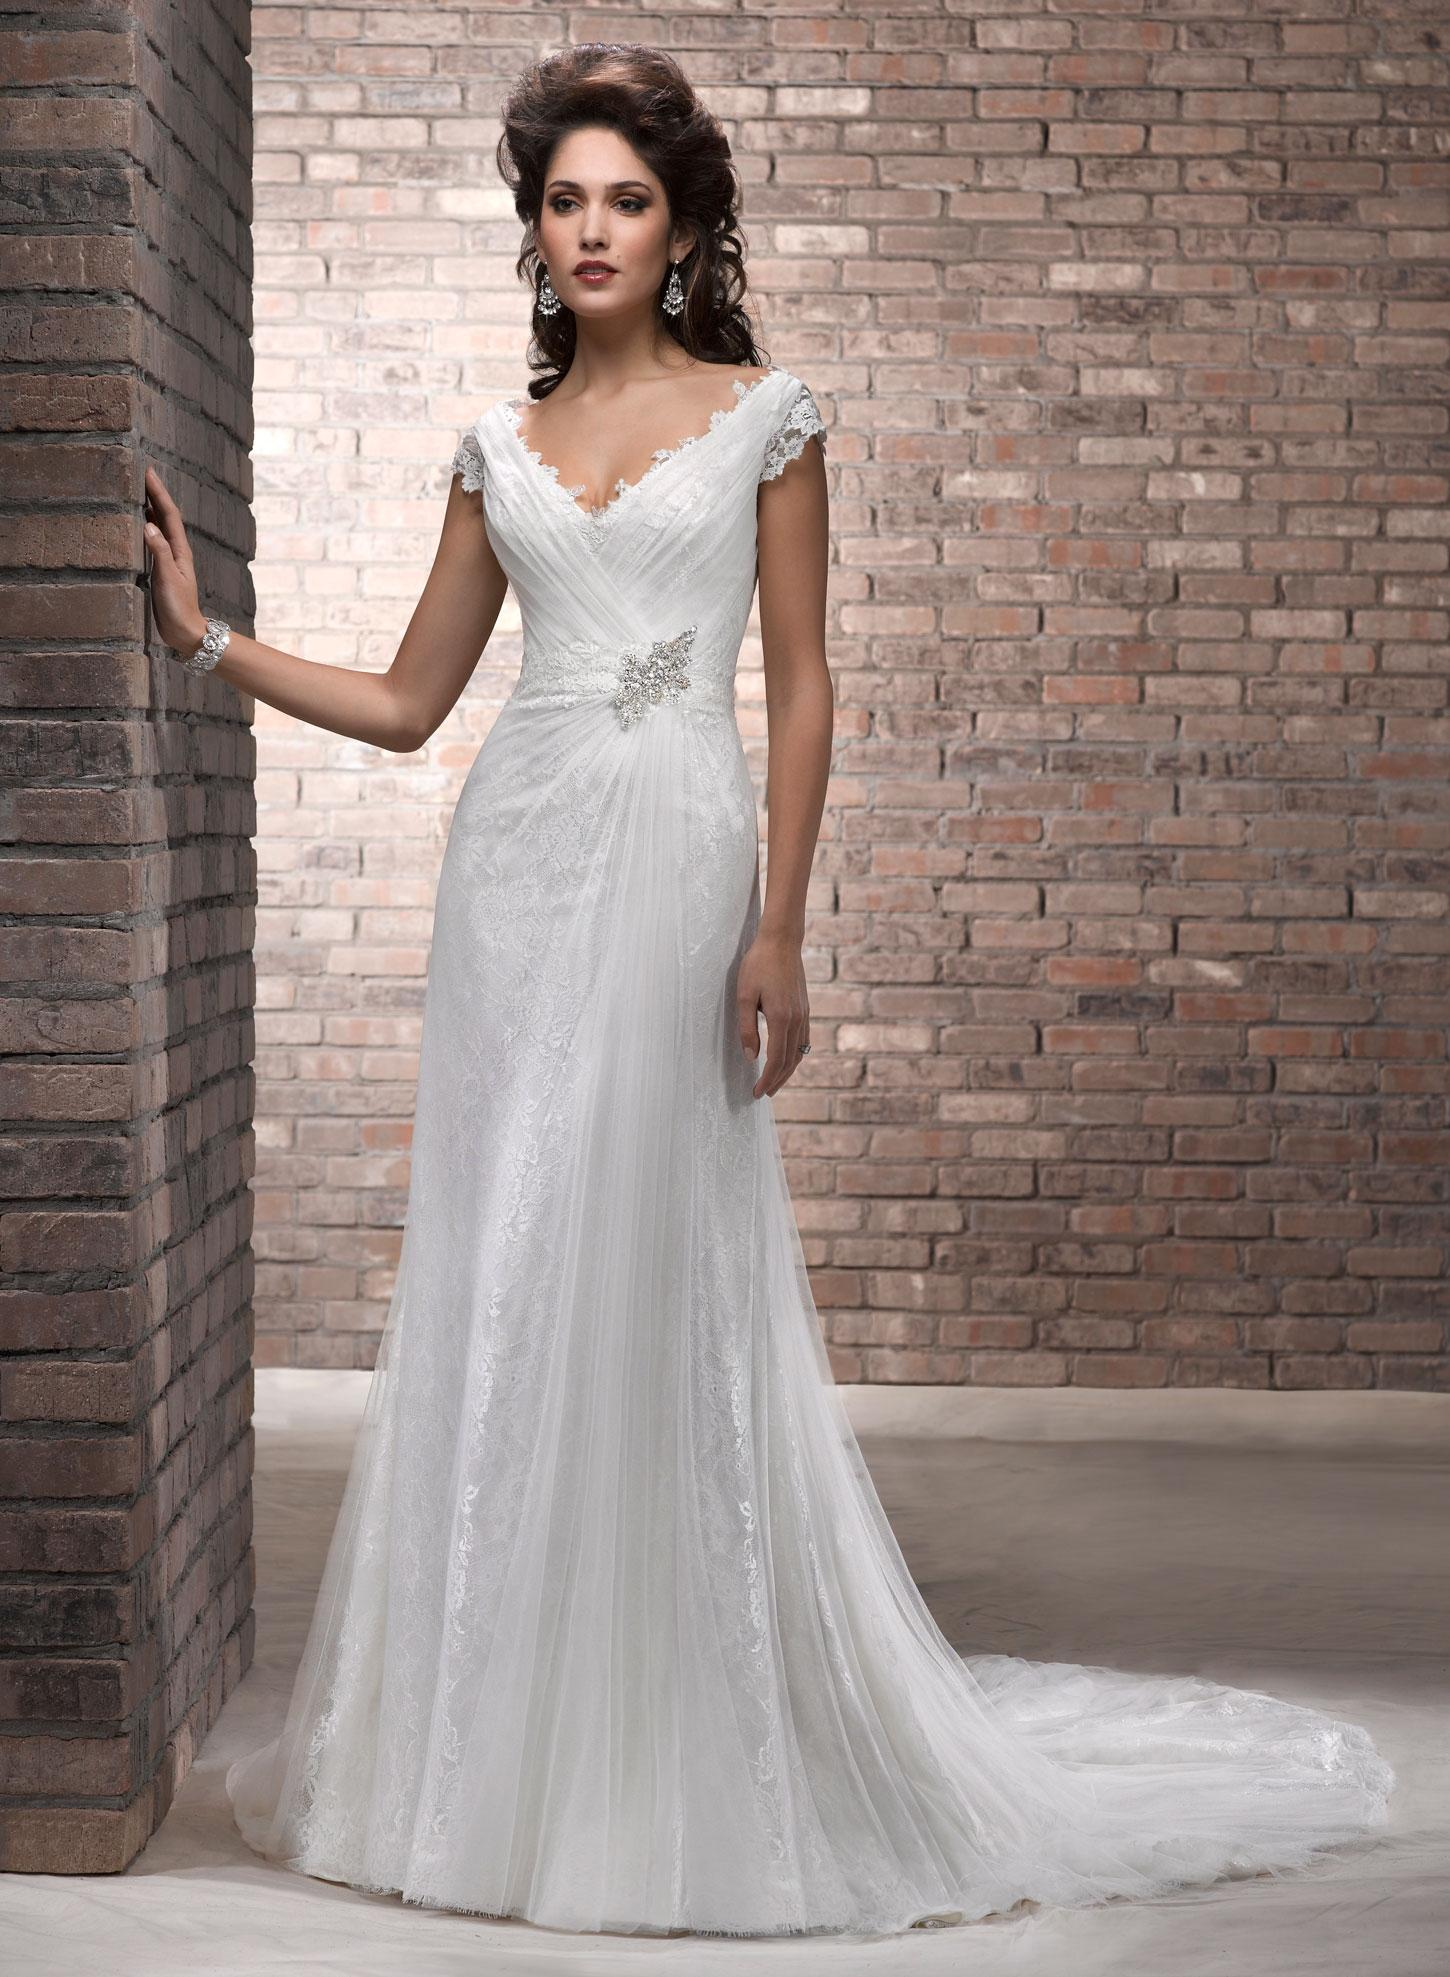 Maggie Sottero Ivory Soft Tulle Fabric Over Delicate Lace ...